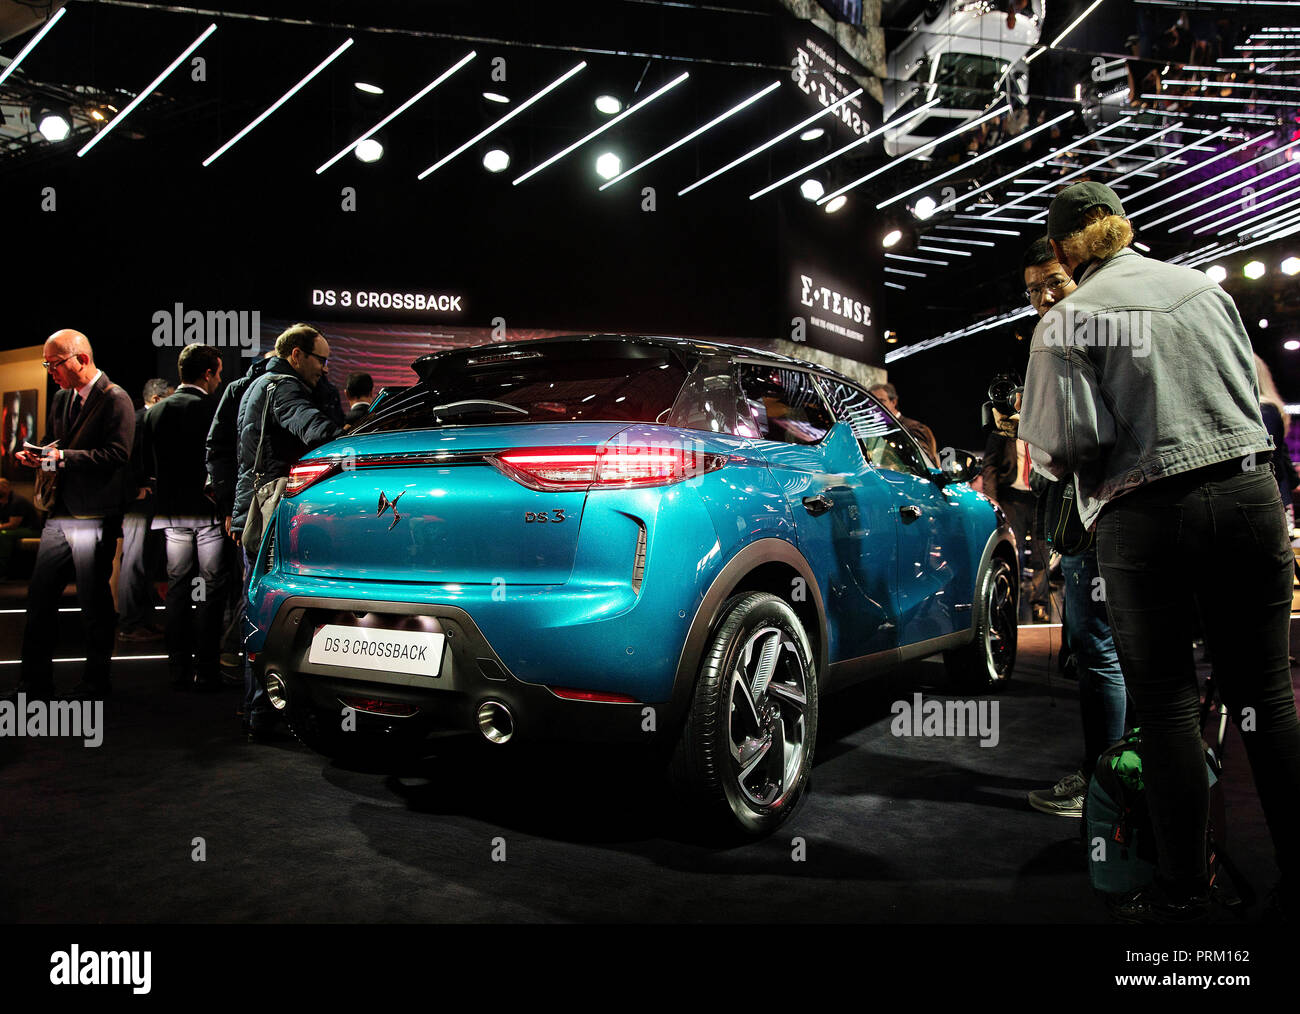 DS3 Crossback during the second day of International Paris Motorshow on Wednesday, October 3rd, 2018 in Paris, France. (CTK Photo/Petr Mlch) - Stock Image